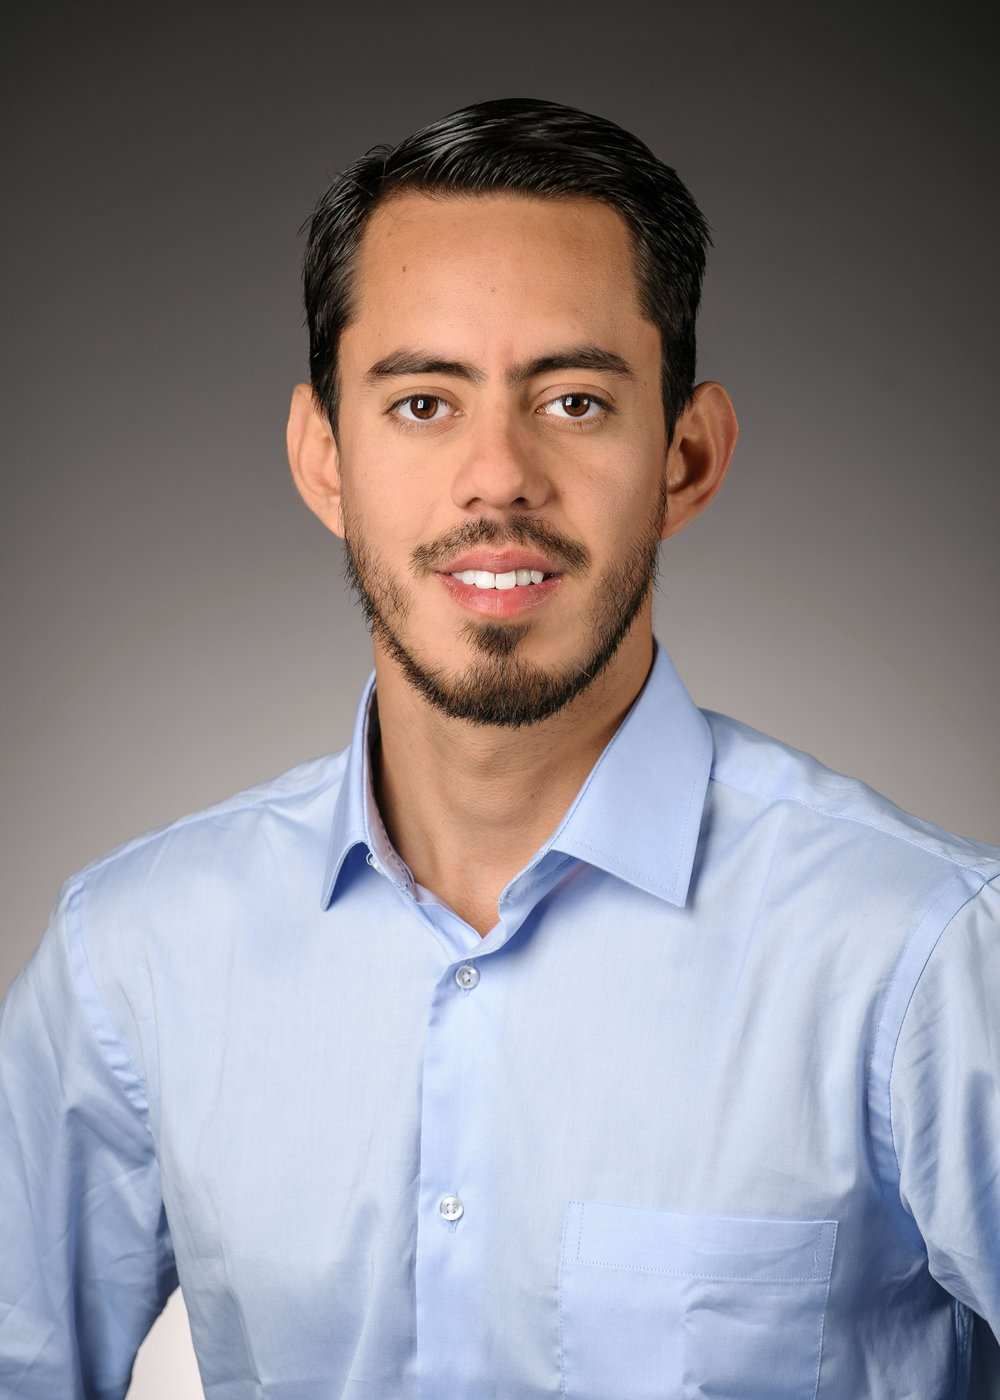 Alejandro Vela |Outreach Manager - Alejandro is a first-year Master in Environmental Sciences and Management candidate at the Bren School UC Santa Barbara, holding a BS in Civil Engineering. In his short half decade career, he has been a: Field and Surveyor Engineer, Budget Analyst, Code and Building Inspector and a Junior Designer. After some years working in the construction industry, he started a project to make residential buildings to heat all its water with solar heat transmission, which influenced him to explore methods in reducing the carbon footprint of households. His motivation now is to be able to grow professionally in an academic environment where the latest applications of technology would make his environmental ambitions possible, as he wishes to accelerate the world's transition towards the use of sustainable building designs and techniques. At the Bren School, he plans on specializing in Energy and Climate. After finalizing the Master's Program, he will do everything in his power to help society to build and manage buildings in a more sustainable way.As the Outreach Manager (OM), he will be responsible for creating, developing and maintaining the project's website. The OM will compile, summarize and condense all the information, research, and results performed by the group. The site will showcase the project's progress in such a way that it will be informative, educational, and entertaining to read. The OM will assist all project members in creating and developing graphs, tables, arranging data, producing keynotes, pictures, videos, or any didactic element necessary to achieve the goal of being constantly able to showcase the project to any audience on any meeting or presentation.